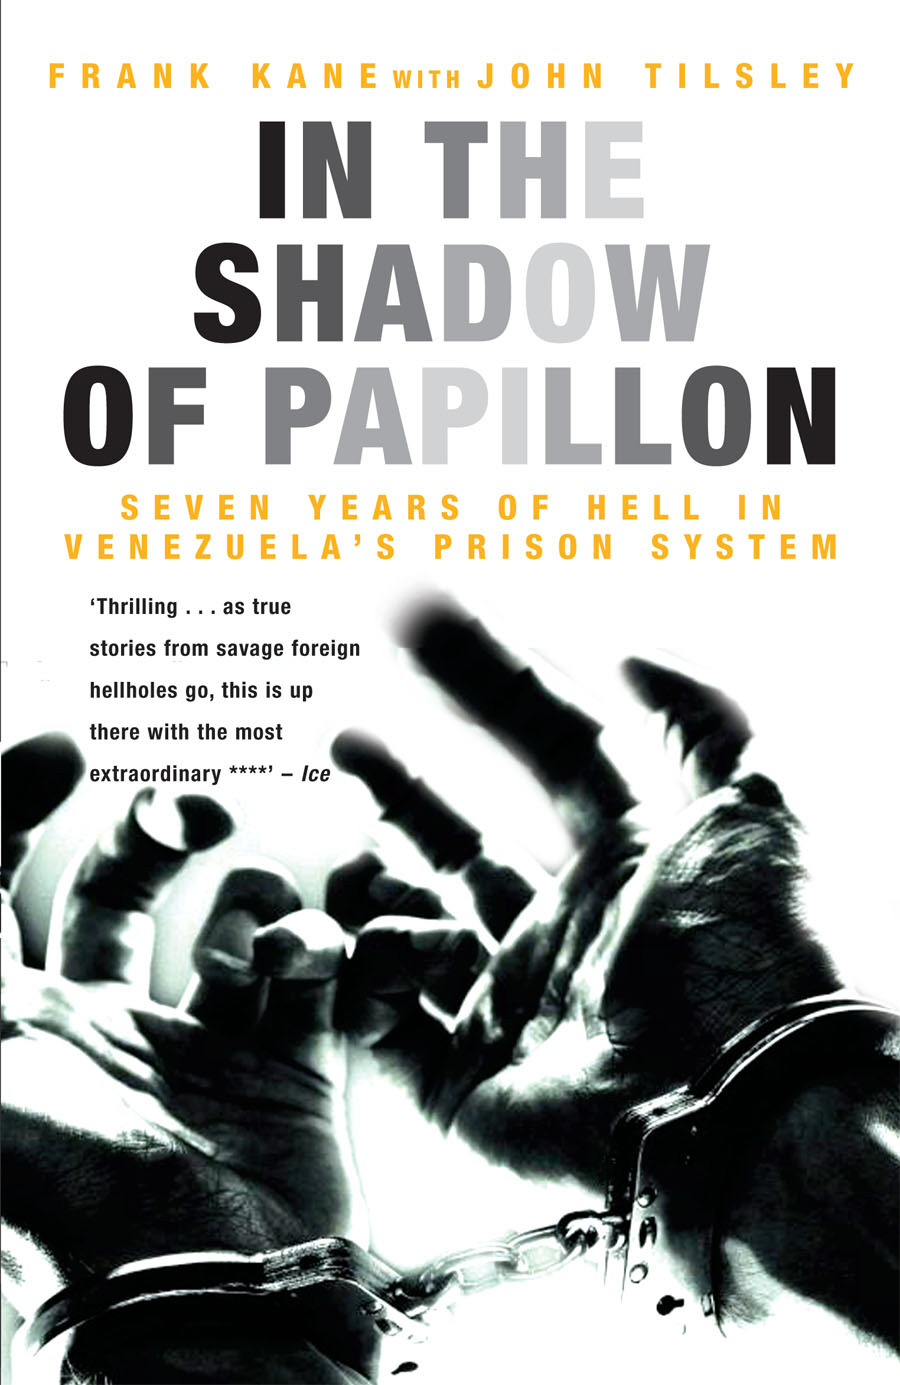 In the Shadow of Papillon Seven Years of Hell in Venezuela's Prison System